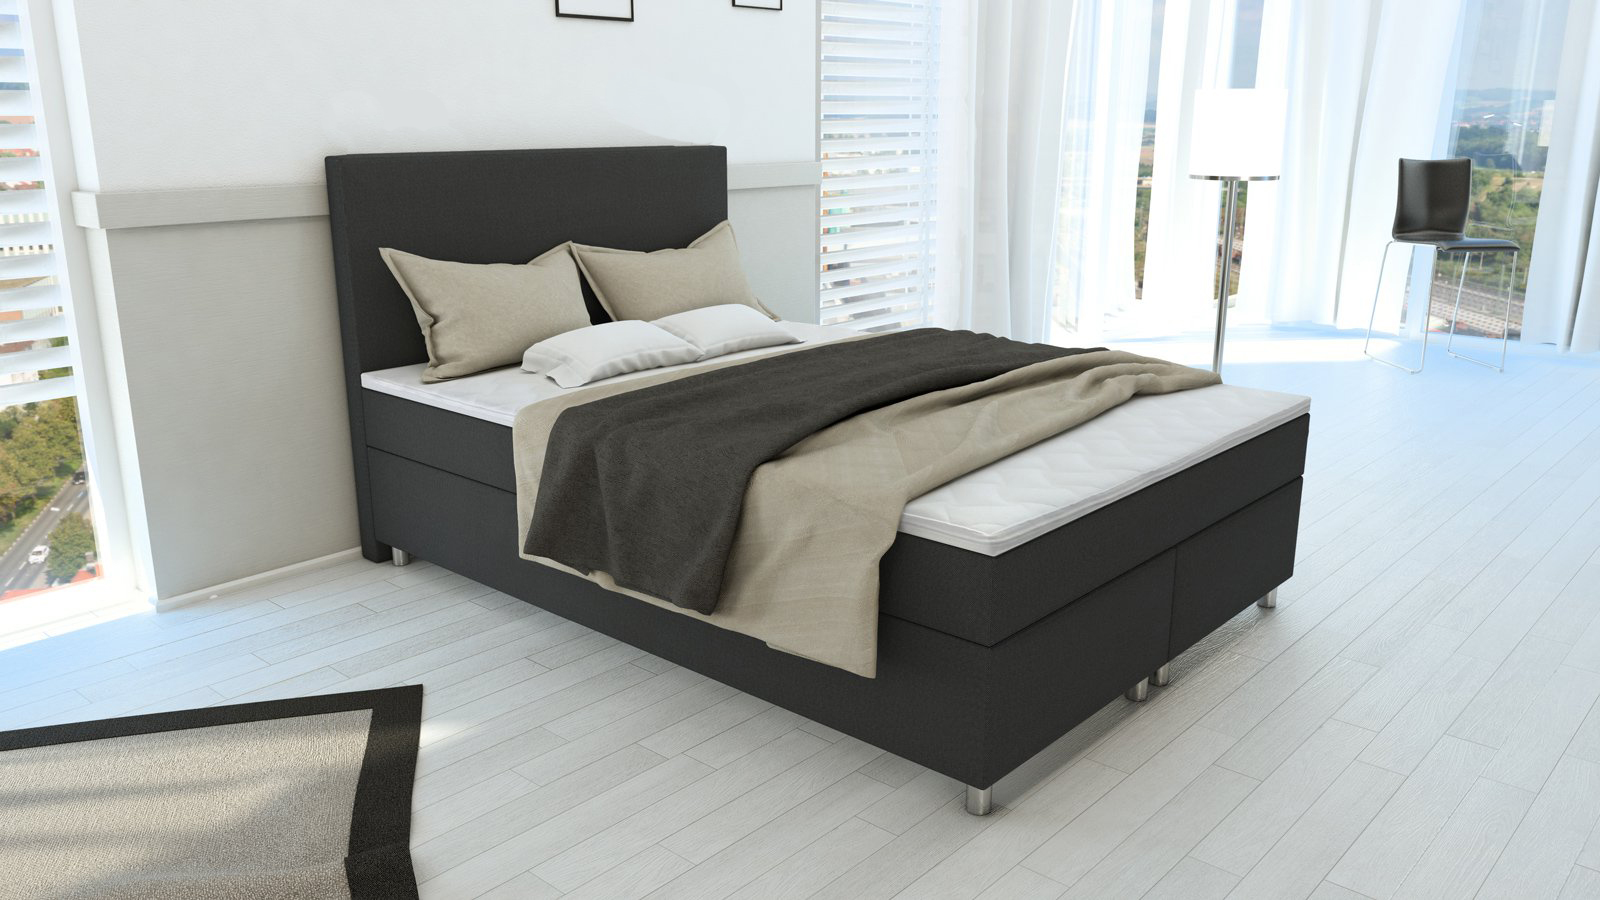 sam boxspringbett stoffbezug grau 140 x 200 cm hotelbett malmb. Black Bedroom Furniture Sets. Home Design Ideas